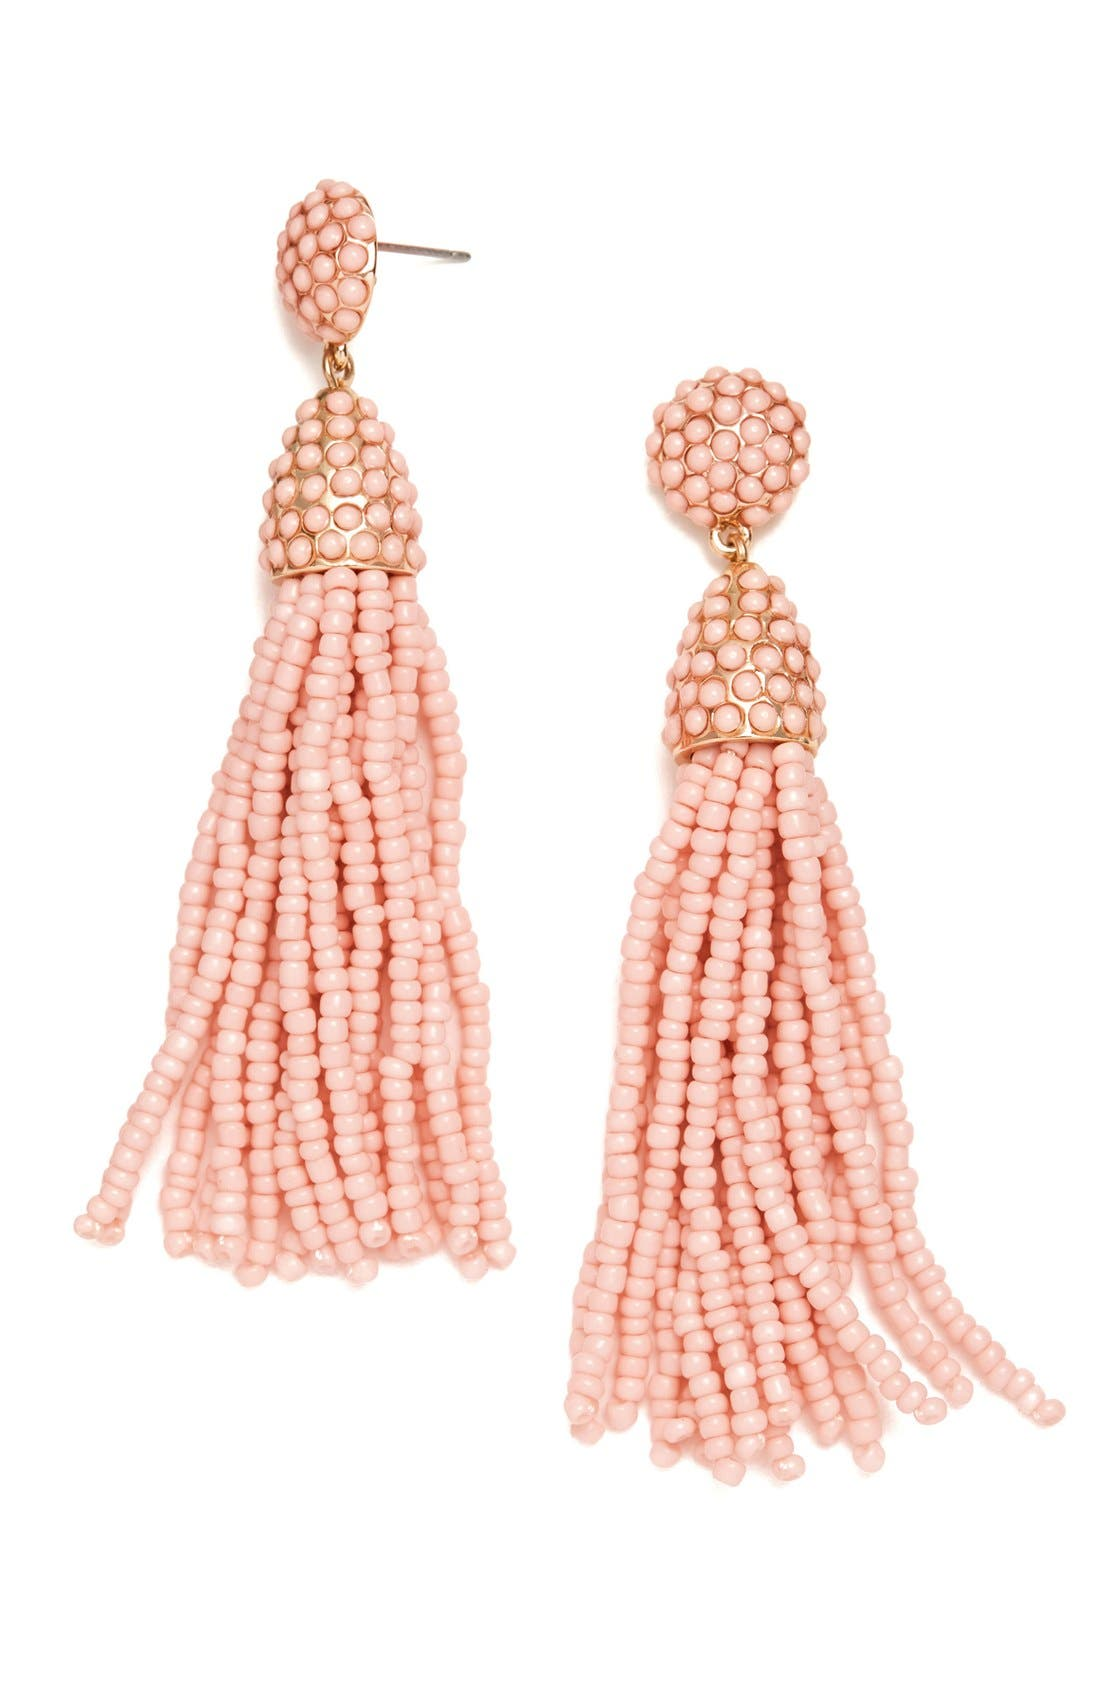 Alternate Image 1 Selected - BaubleBar 'Piñata' Tassel Earrings